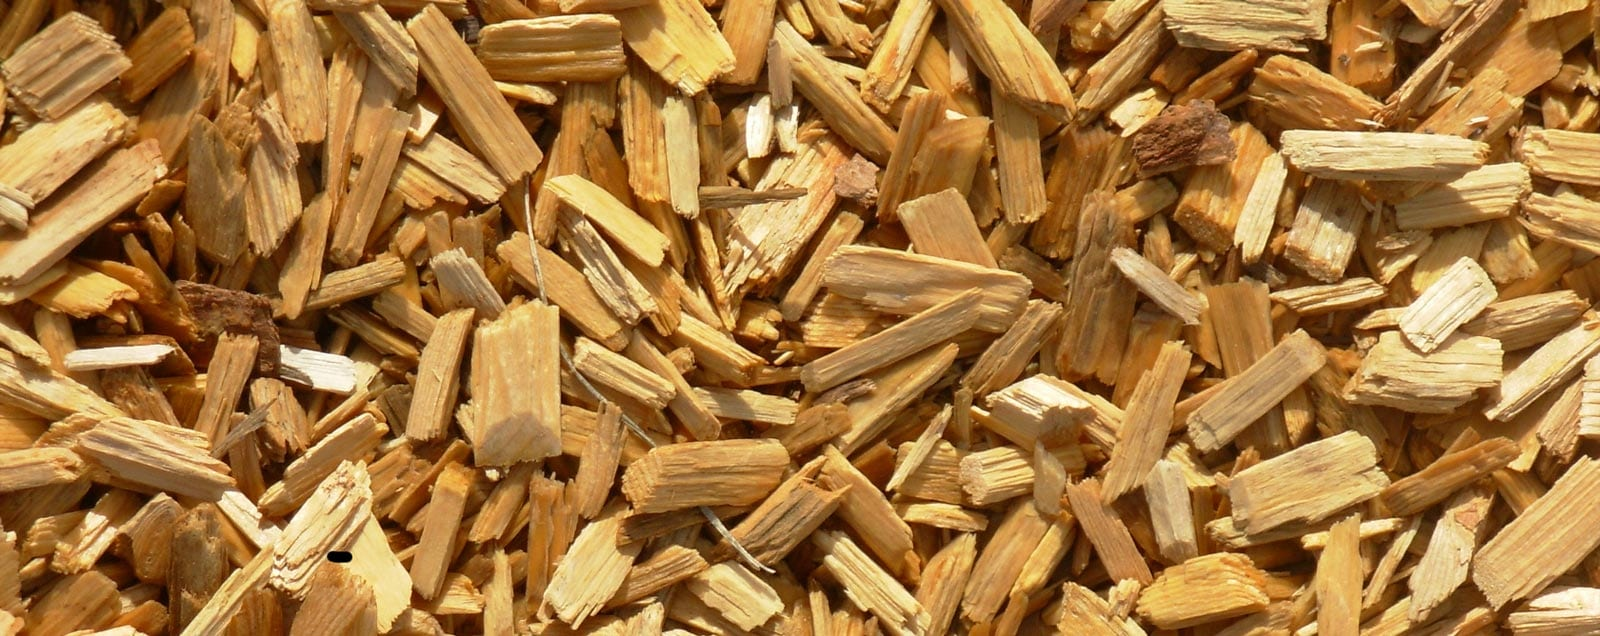 wood chip heating fuel